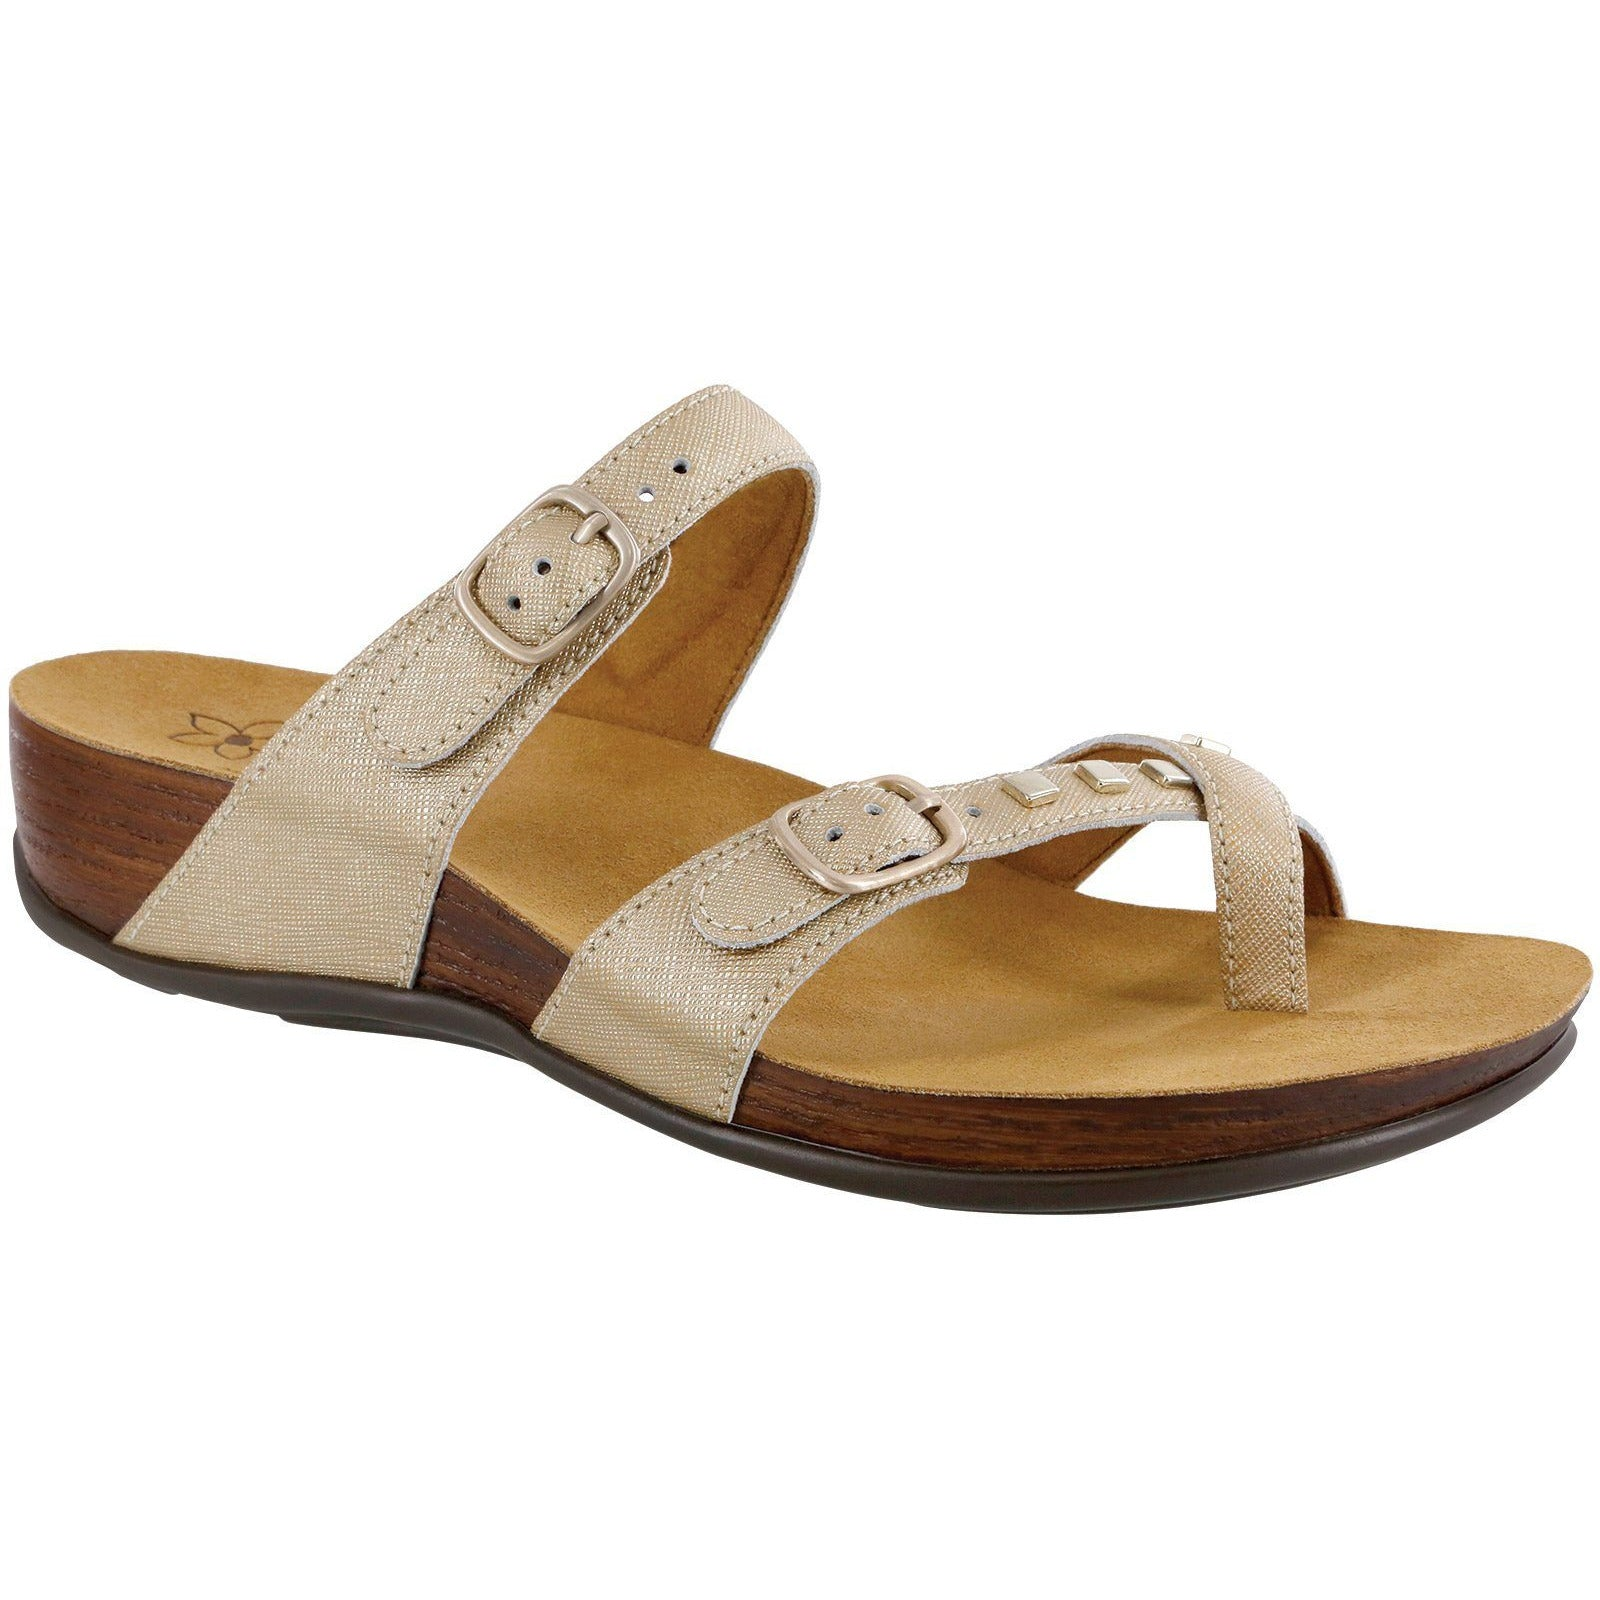 Jett Gold by SAS Shoes: Comfort Women's Sandals